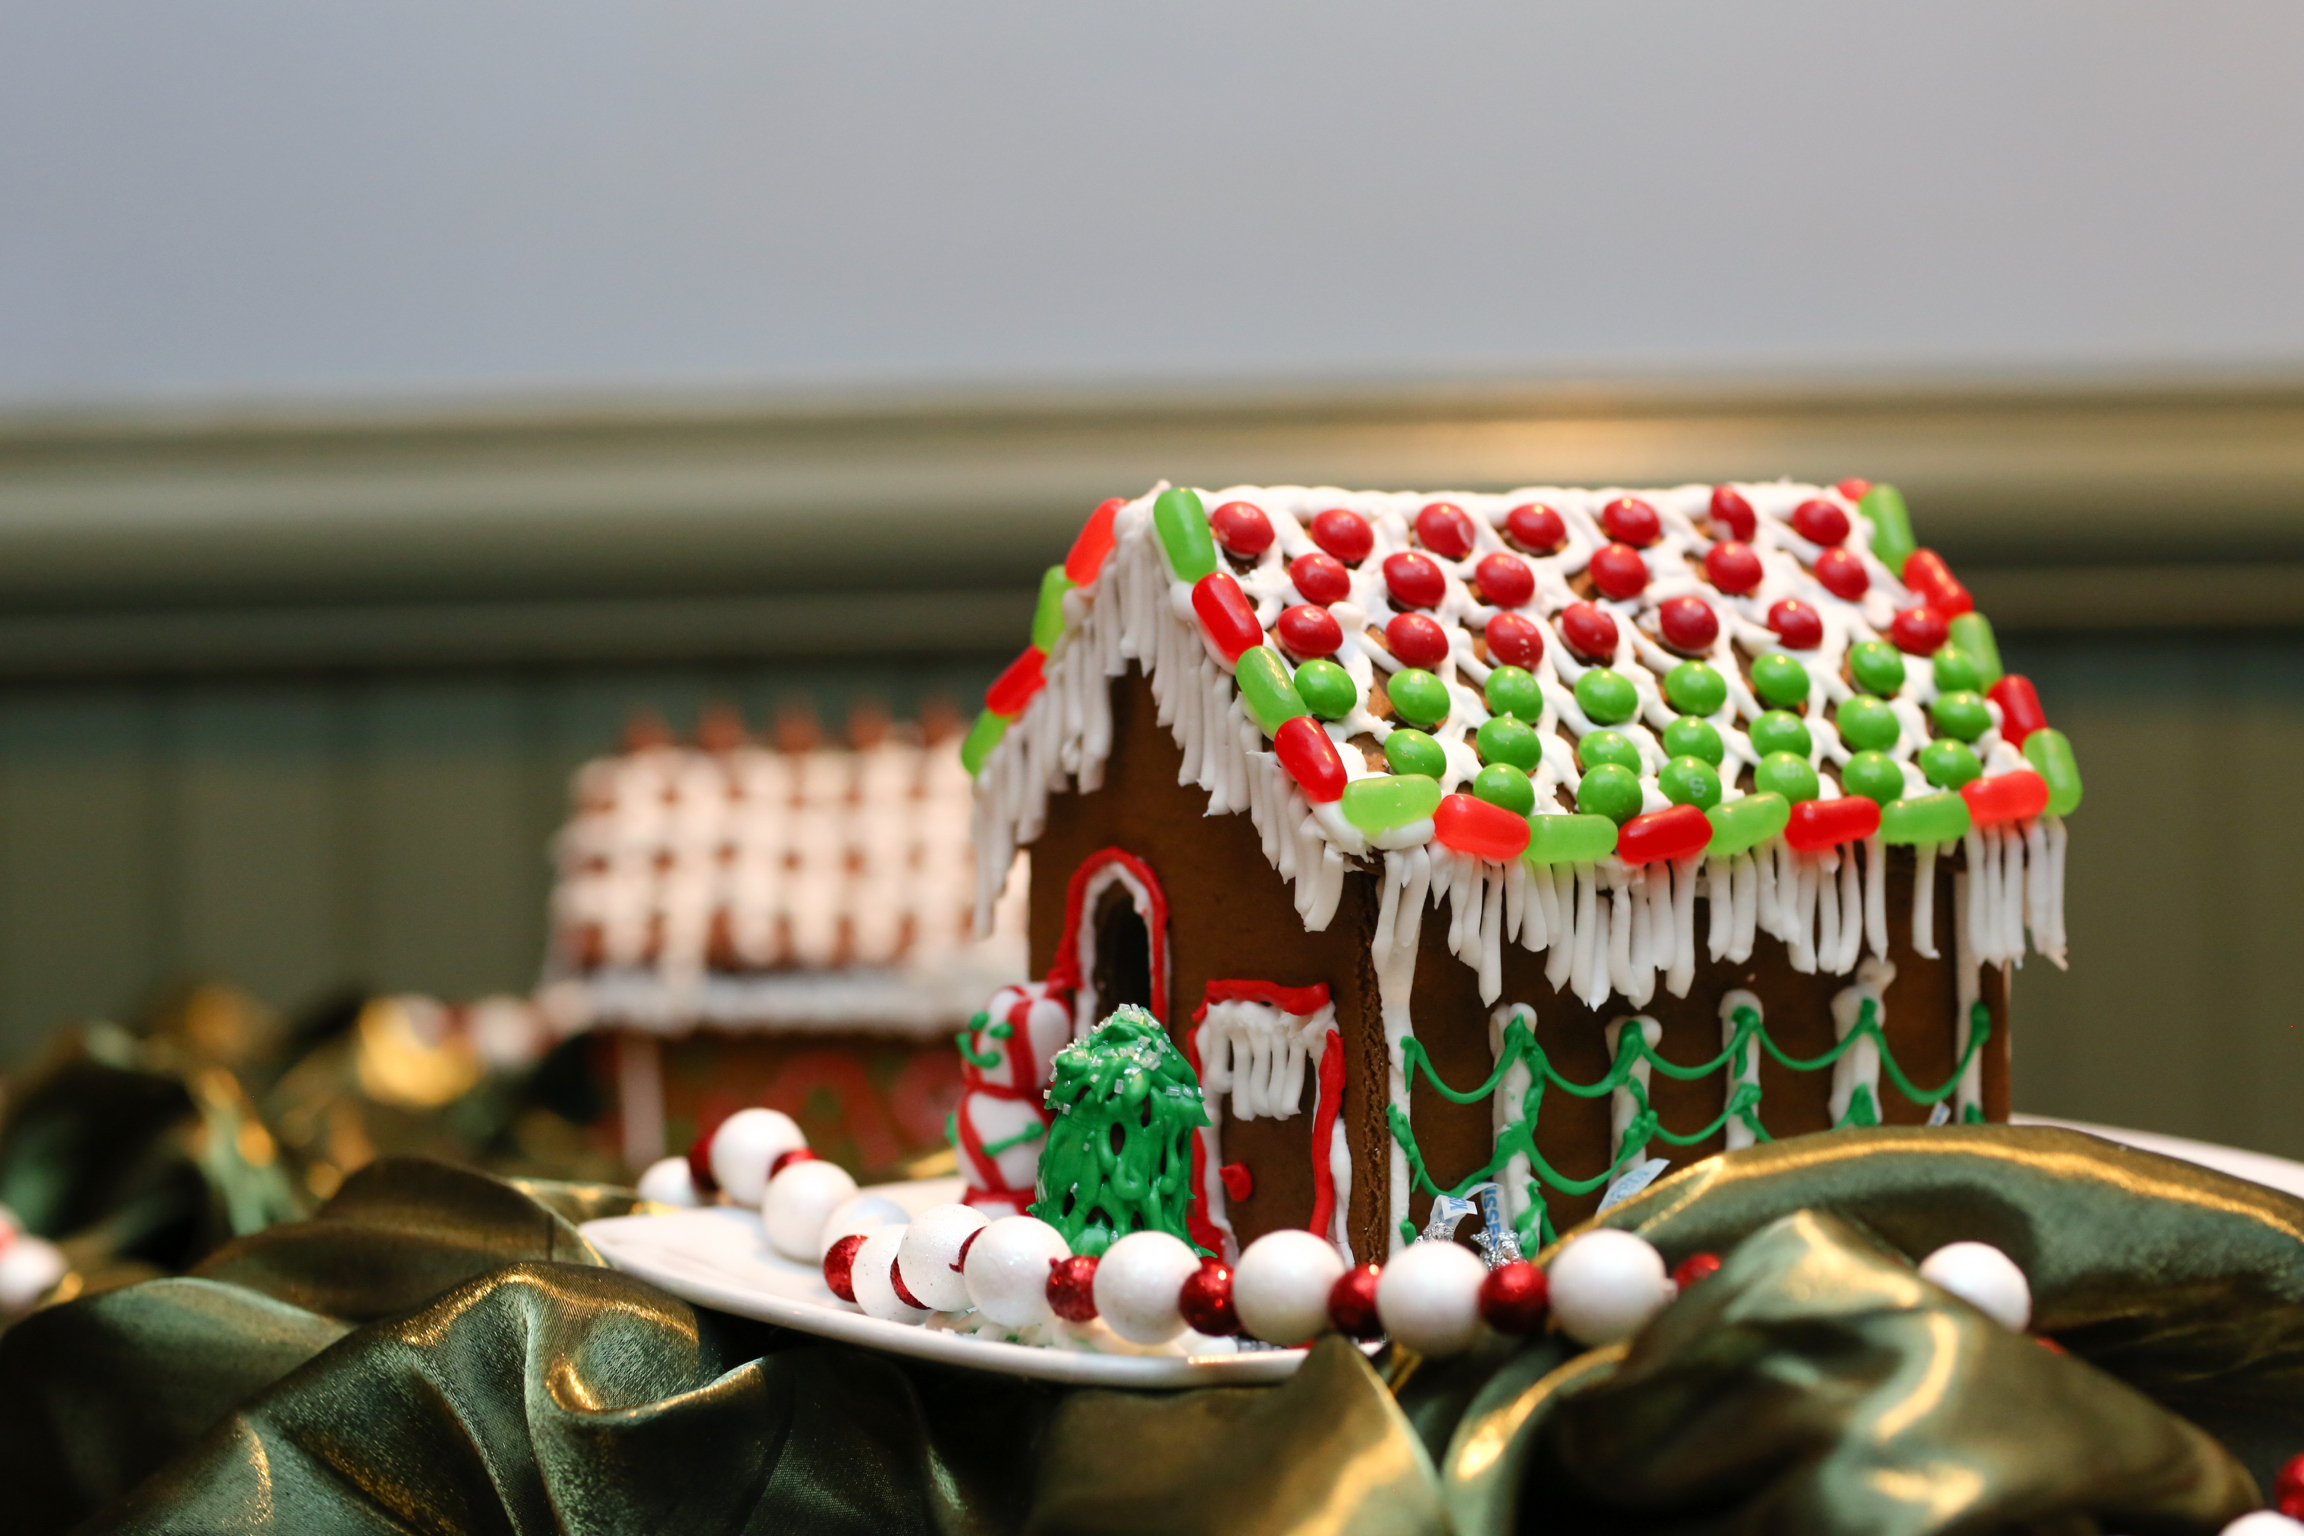 Detailed Close-Up of Gingerbread House